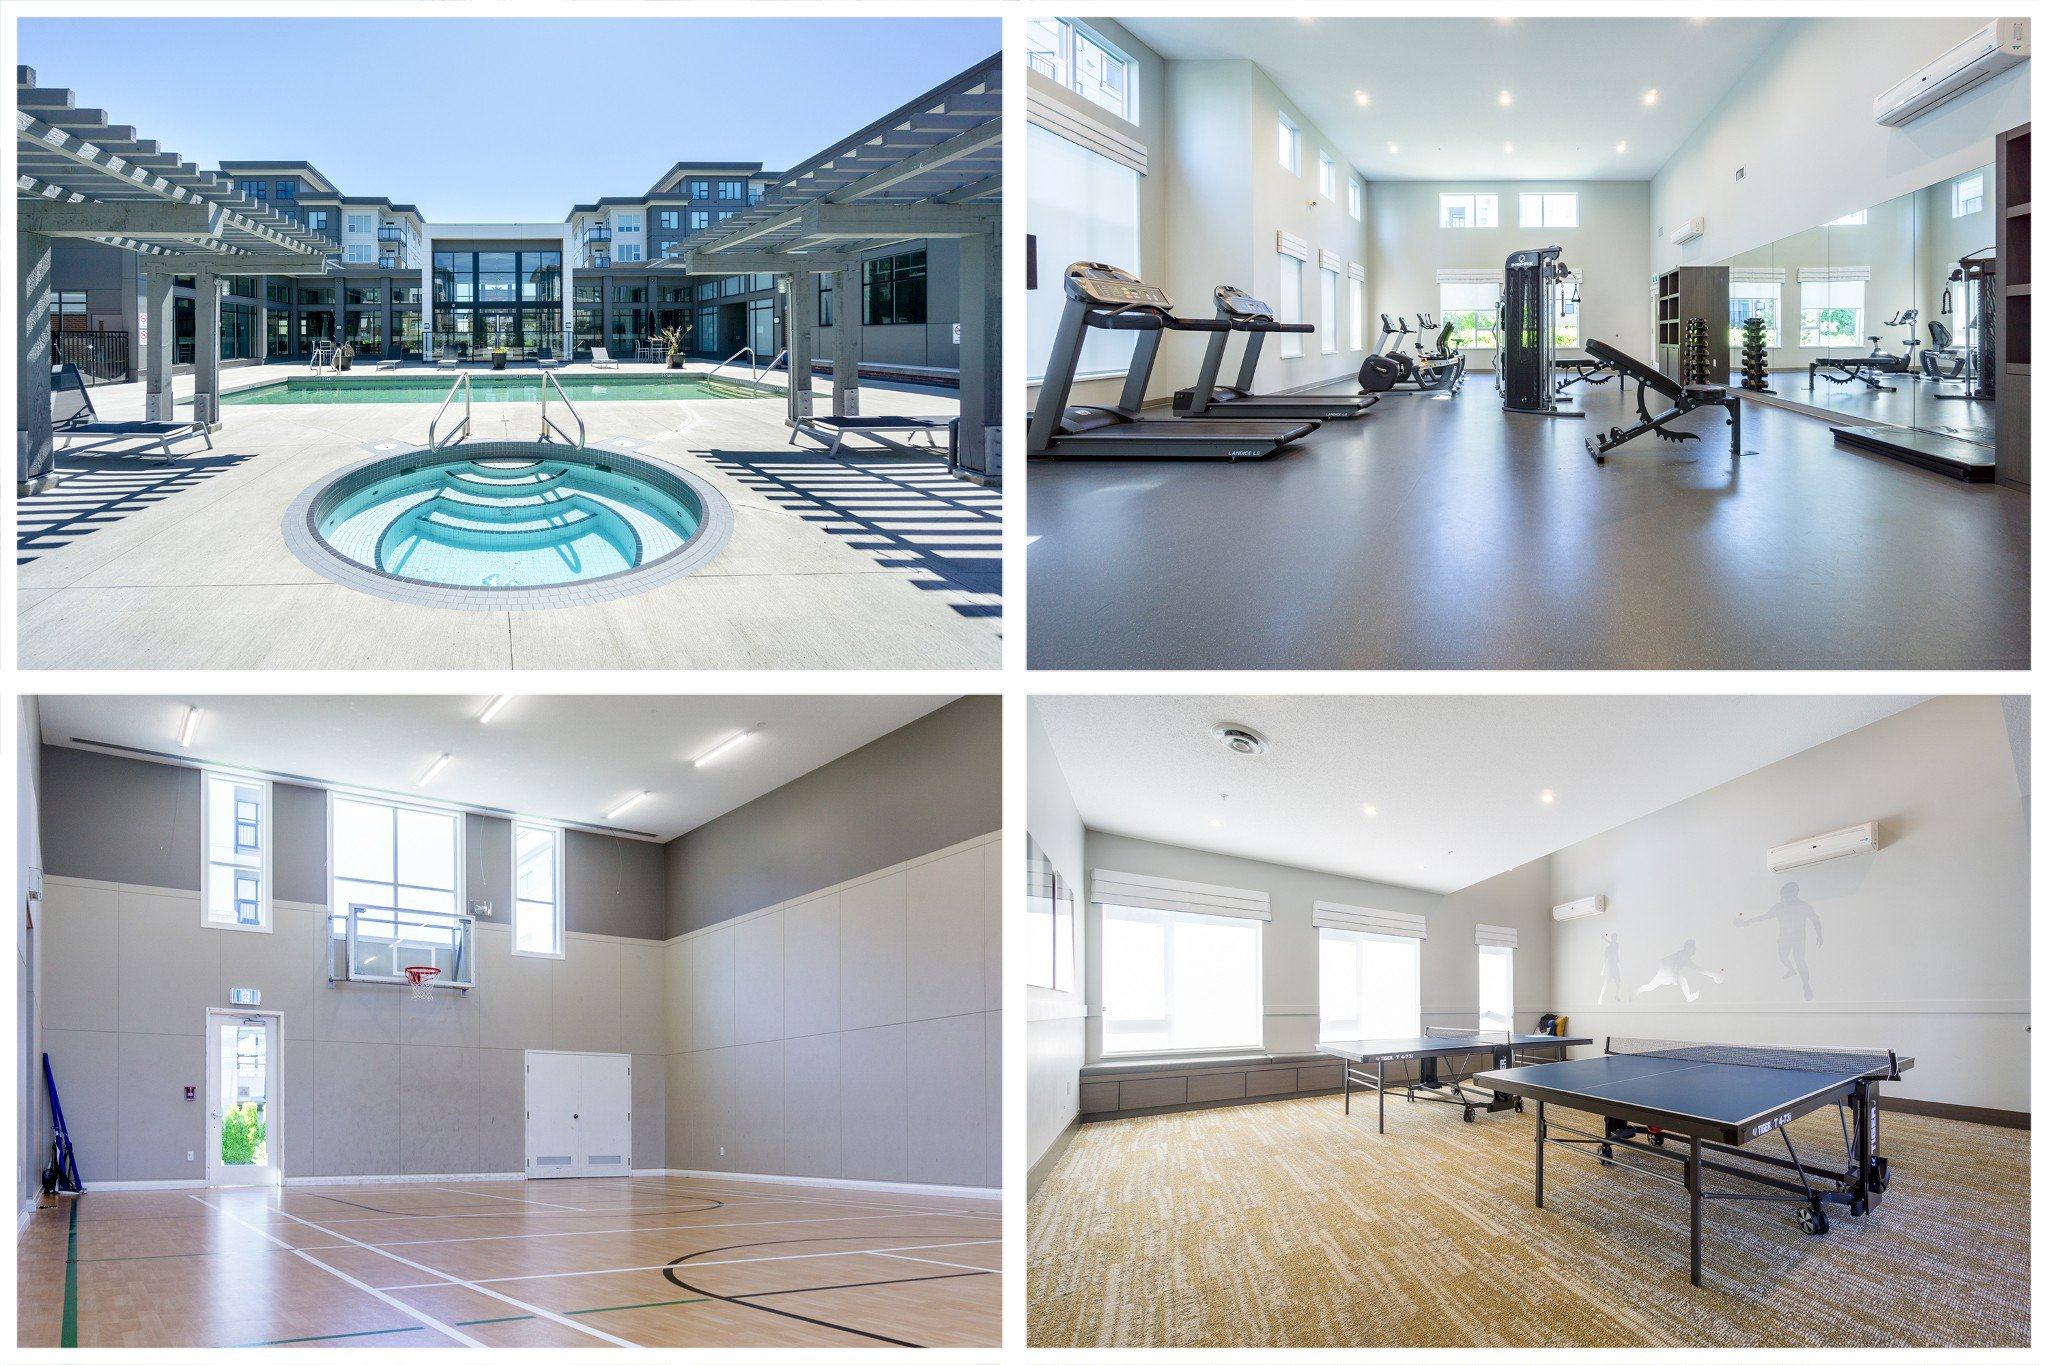 """Photo 29: Photos: 402 9311 ALEXANDRA Road in Richmond: West Cambie Condo for sale in """"ALEXANDRA COURT"""" : MLS®# R2266613"""